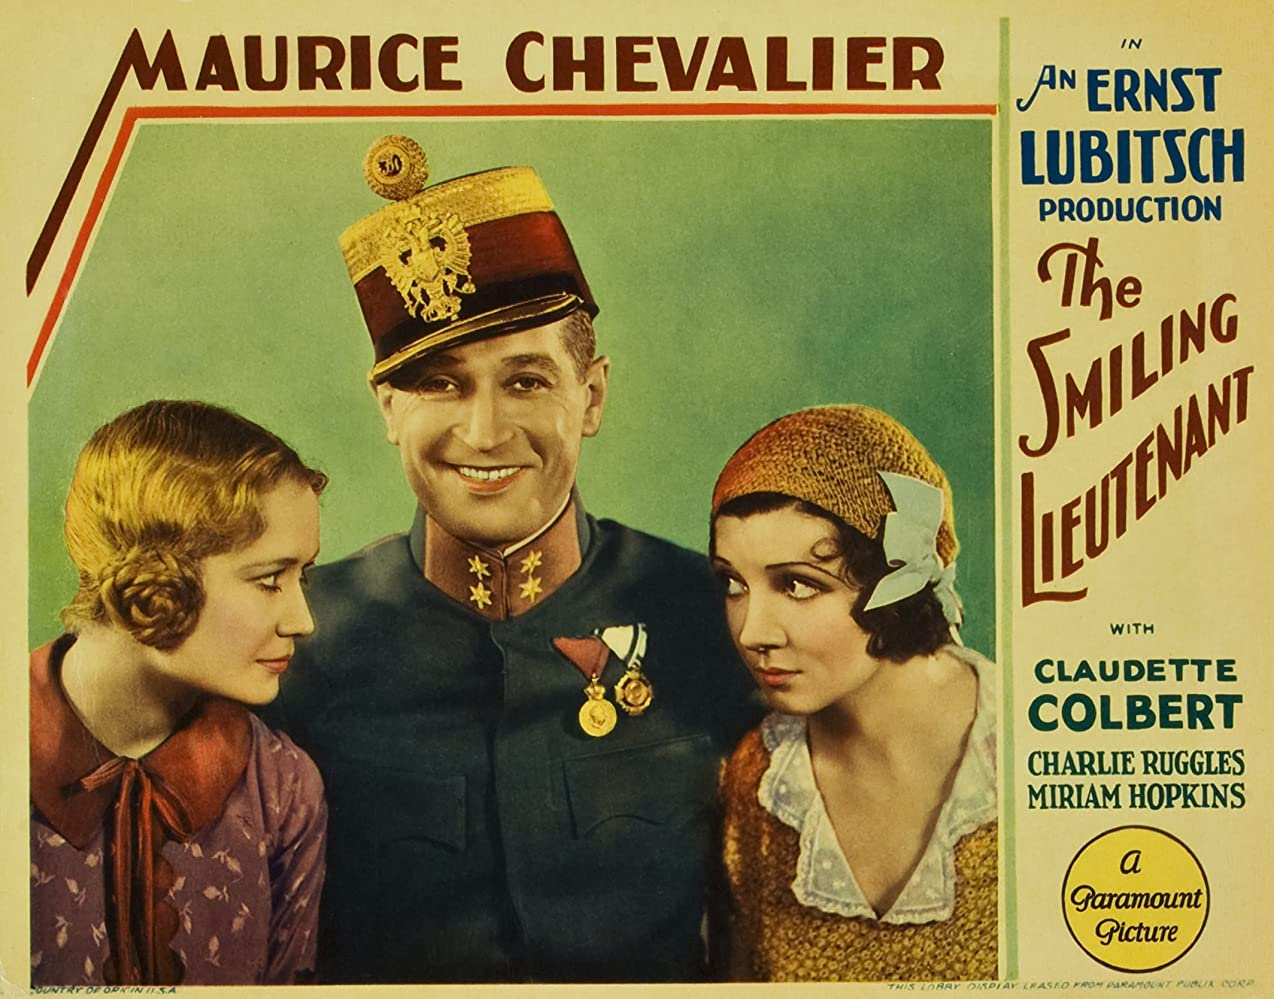 Claudette Colbert, Maurice Chevalier, and Miriam Hopkins in The Smiling Lieutenant (1931)